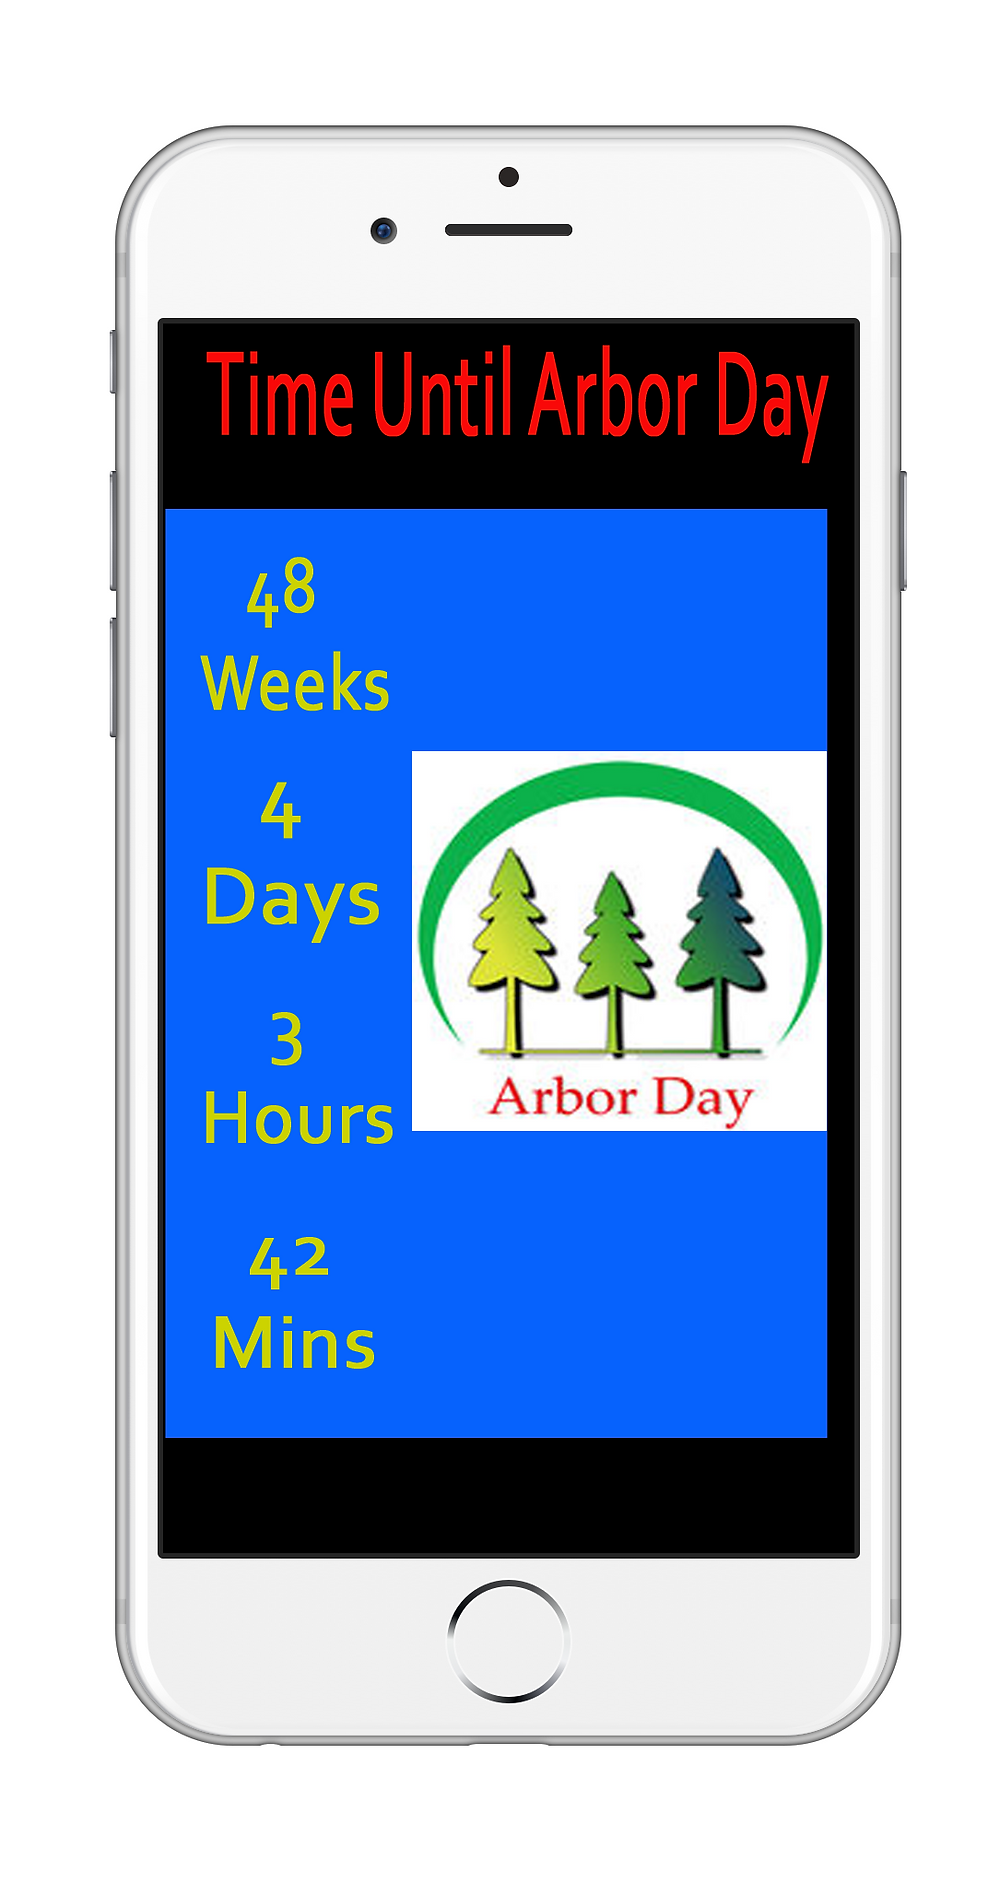 iphone_6ArborDay.png